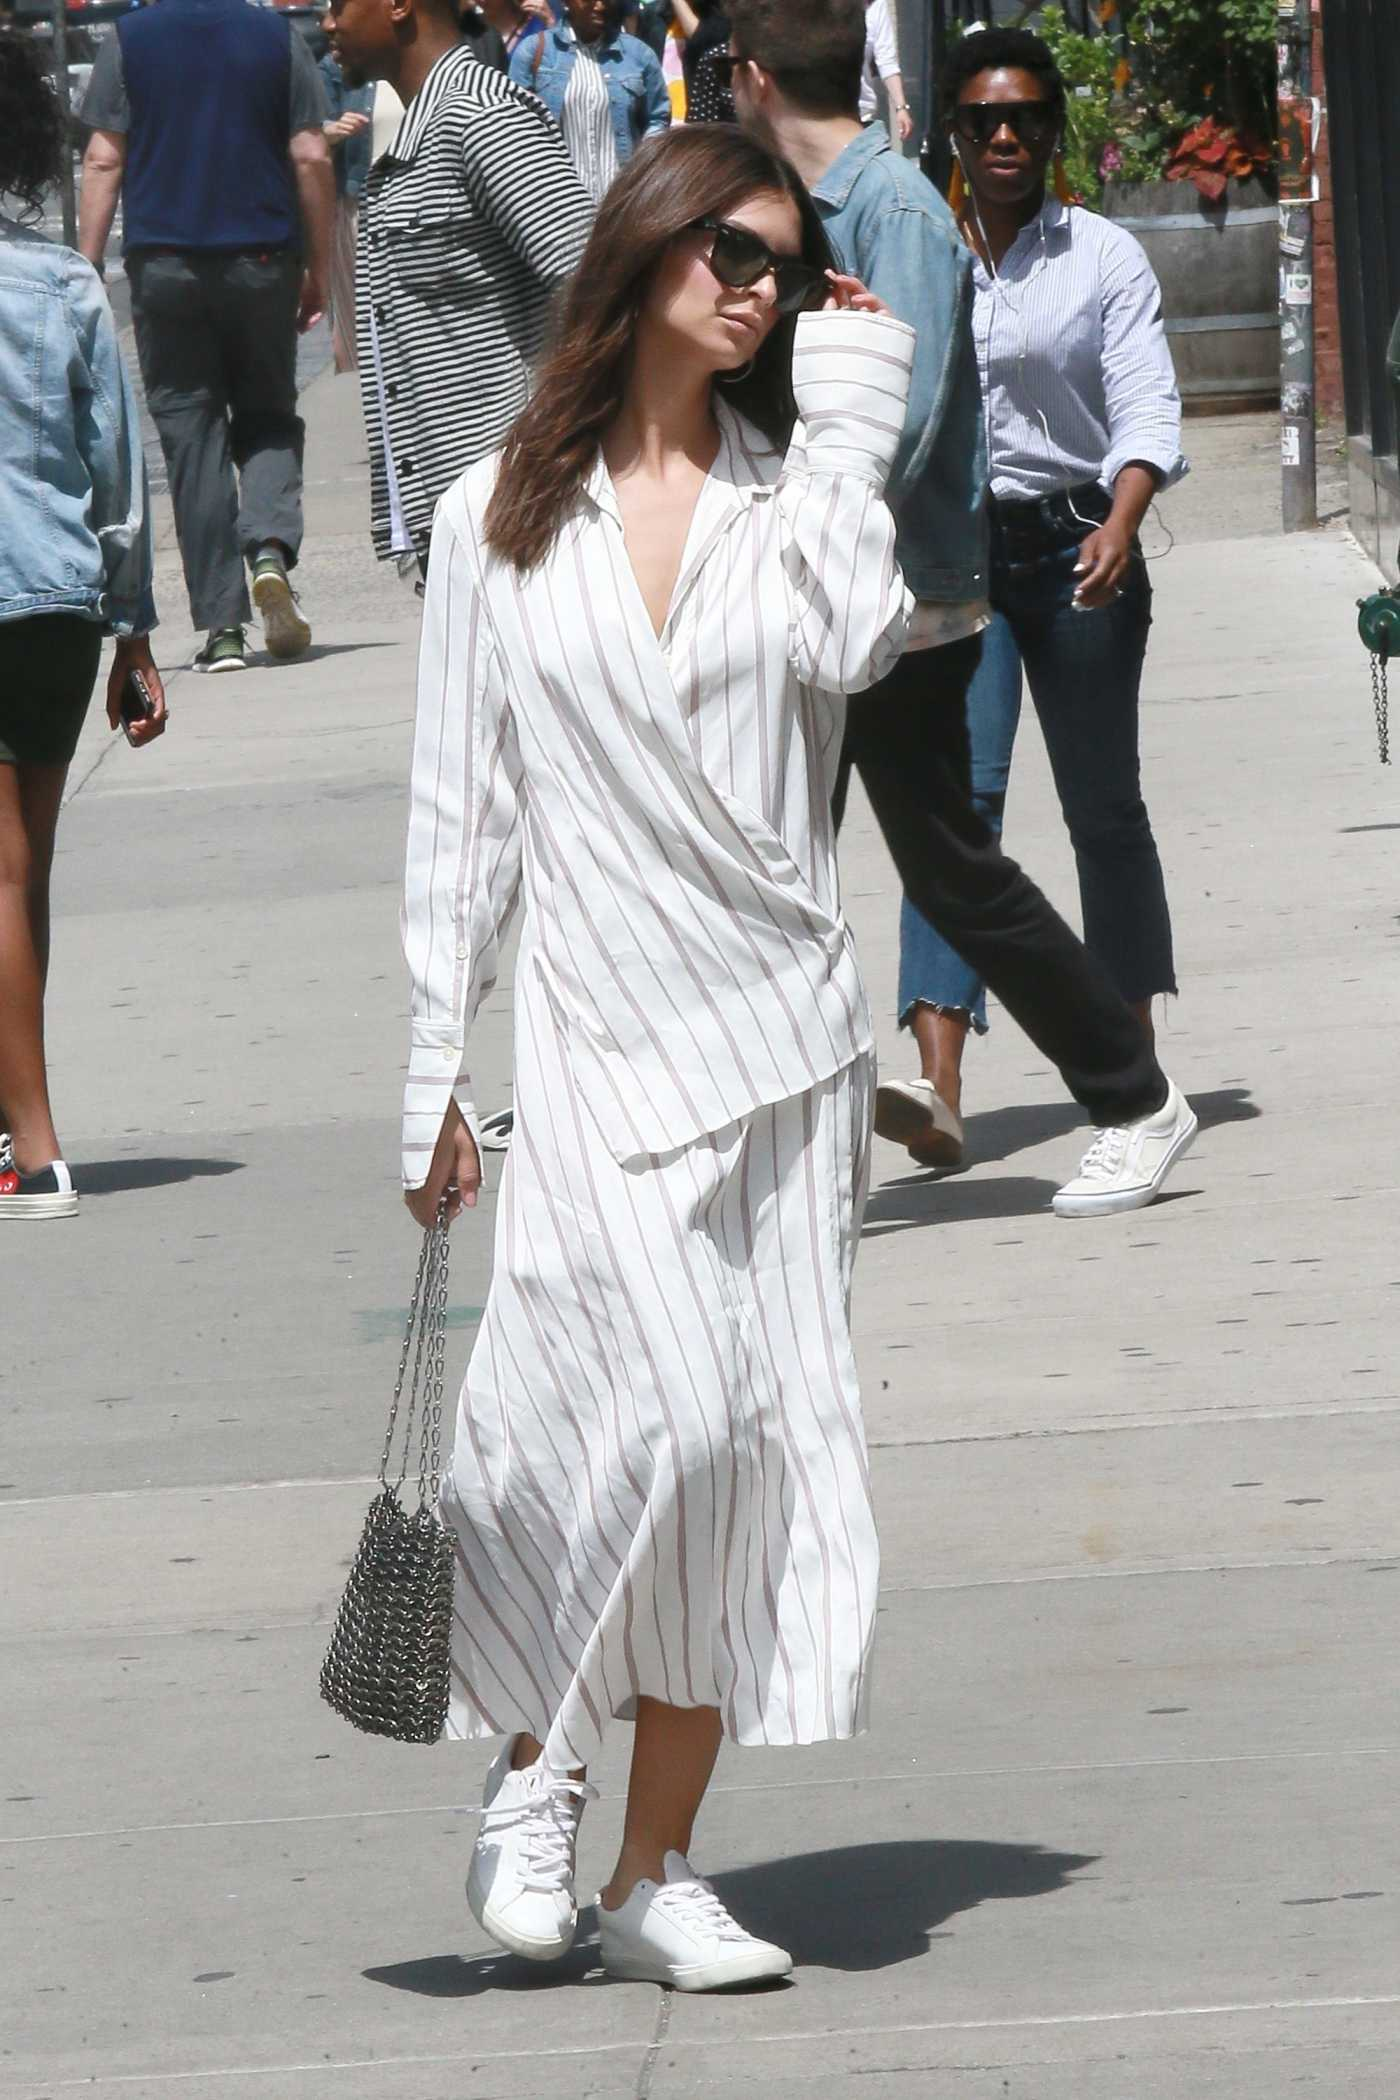 Emily Ratajkowski in a White Striped Dress Was Seen Out in New York 05/24/2019